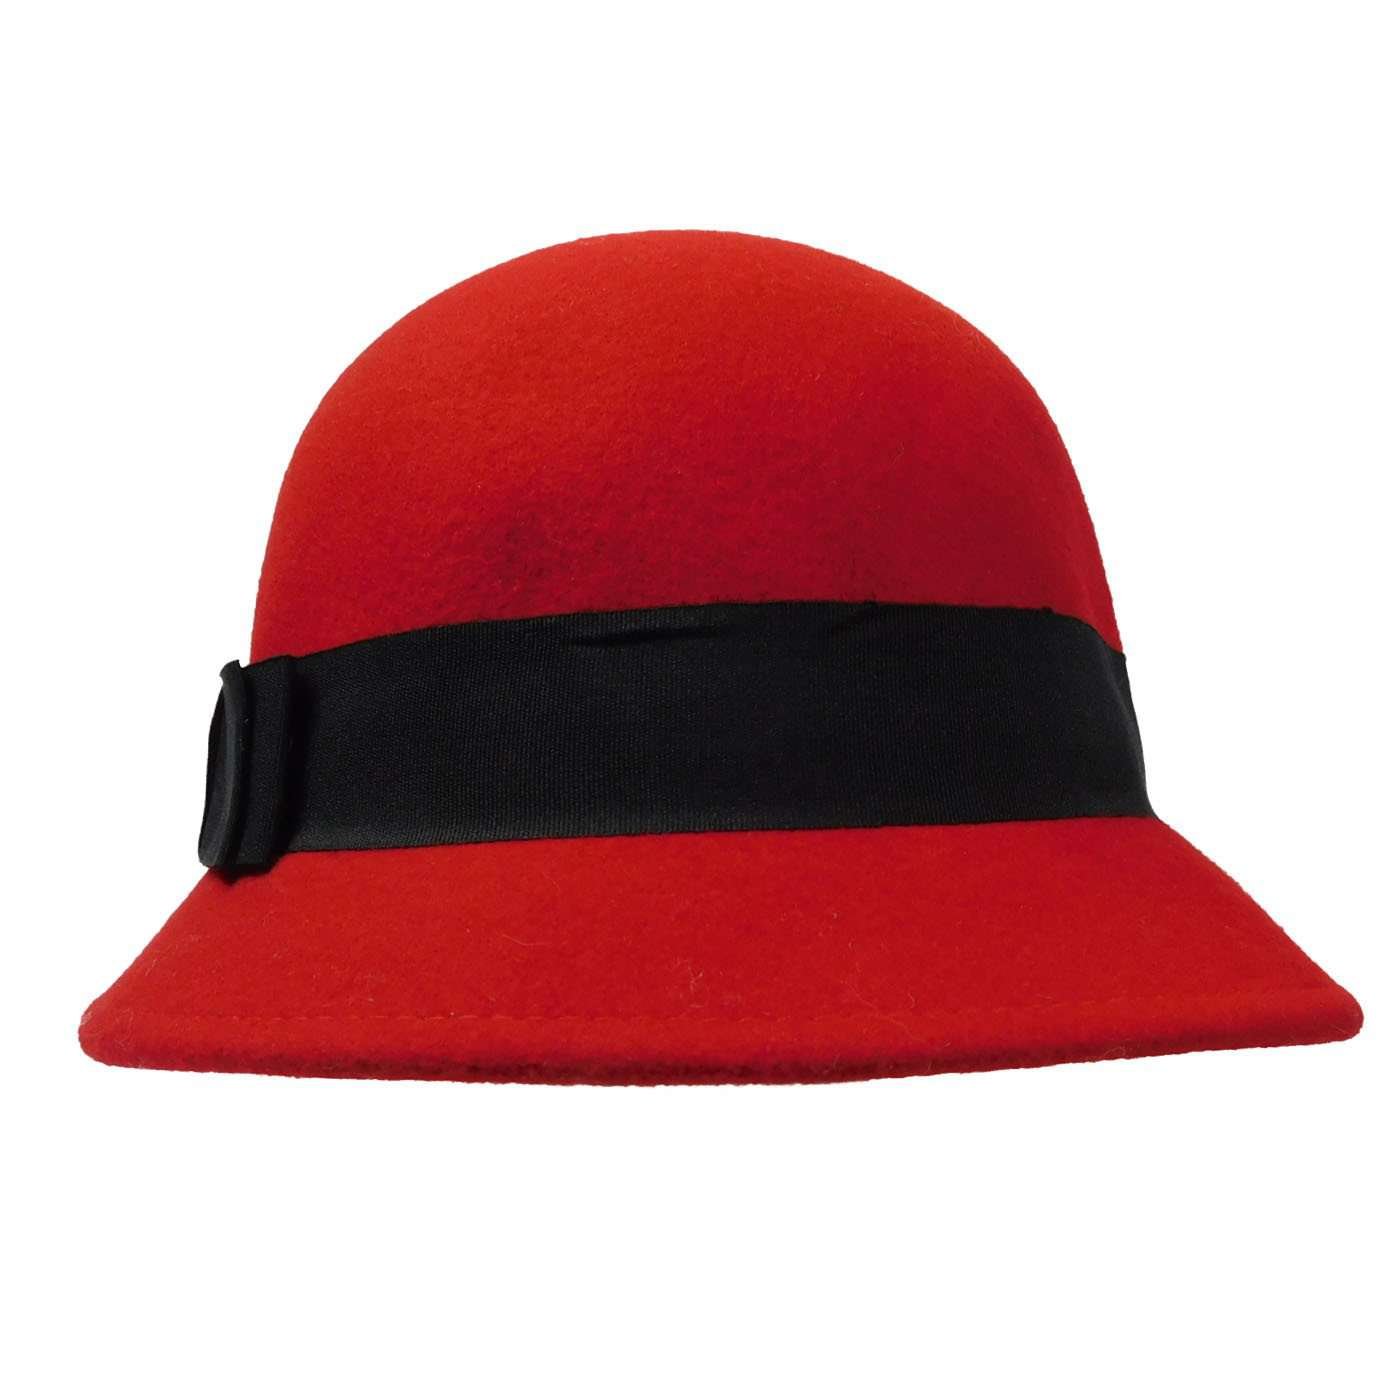 Asymmetrical Cloche with Black Band - SetarTrading Hats